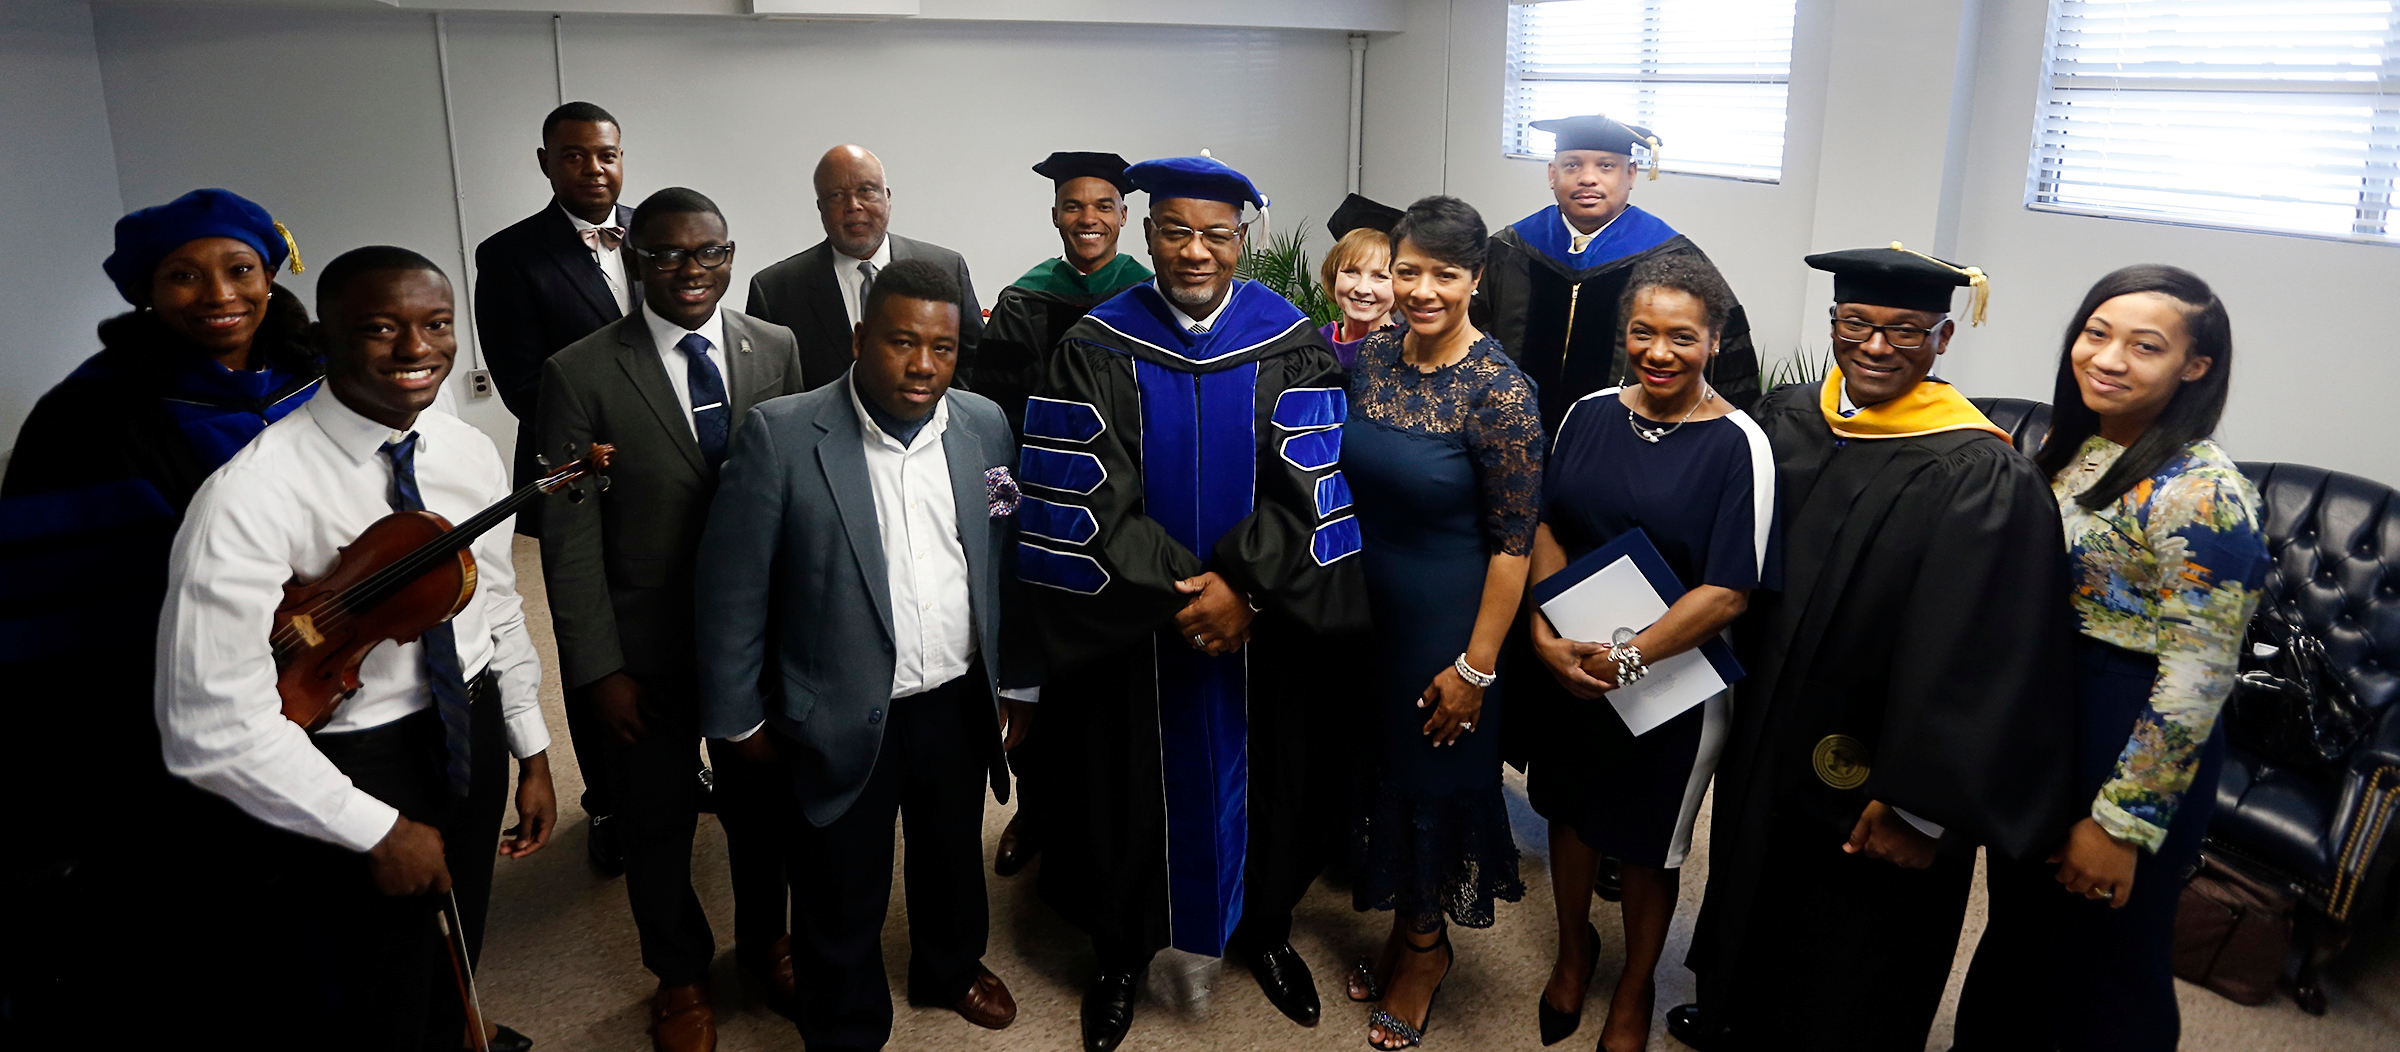 It takes a village: Participants in the inauguration ceremony for Dr. William B. Bynum Jr., 11th president of Jackson State University, pose with the president and Deborah Elayne Bynum, first lady. (Photo by Charles A. Smith/JSU)